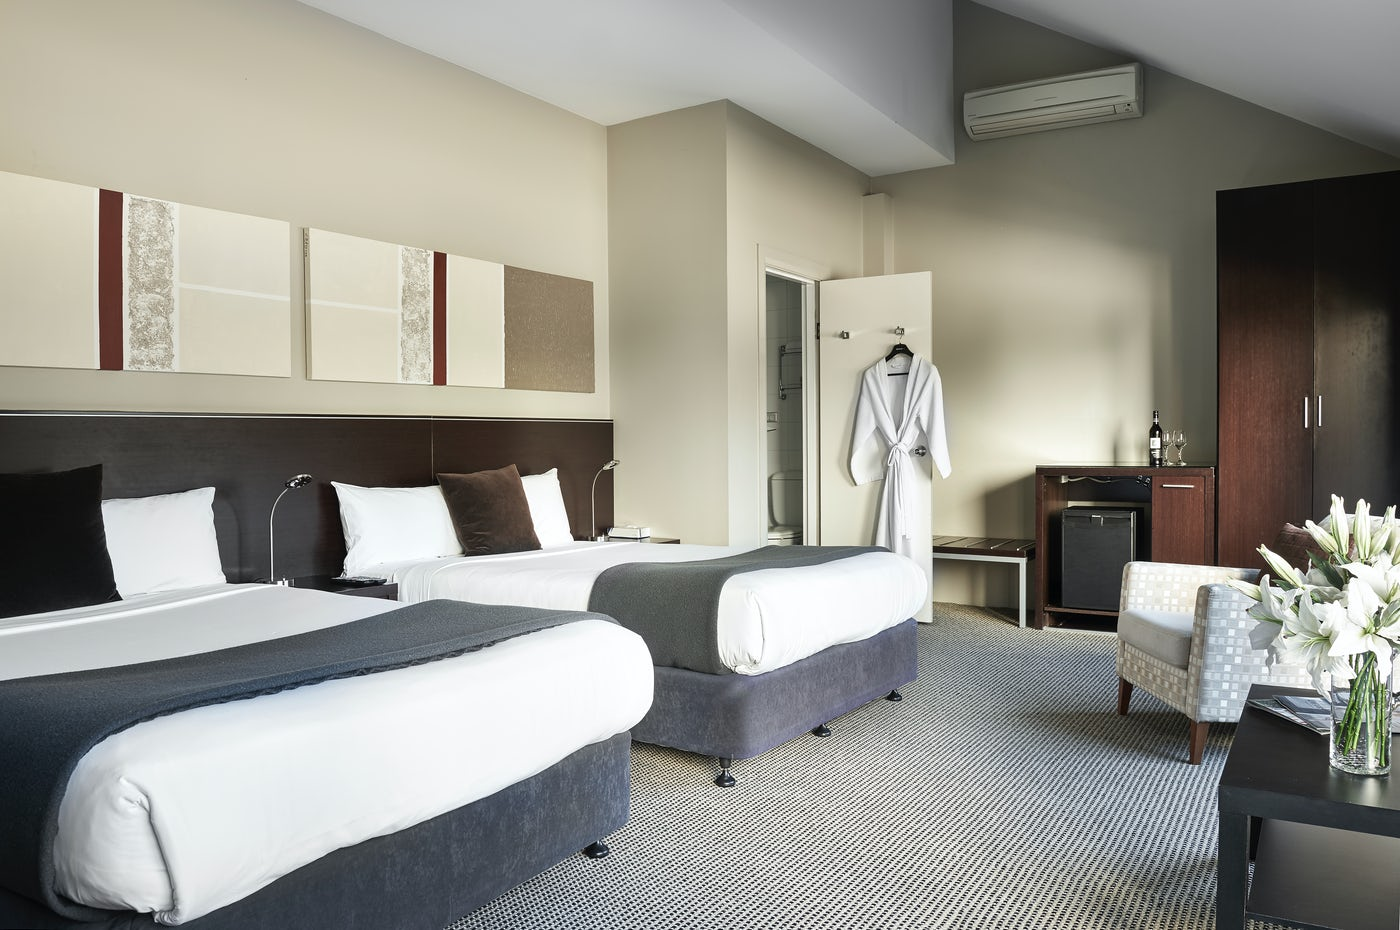 Studio Twin Suite with robe at Boutique Sydney Accommodation - Vulcan Hotel, Ultimo